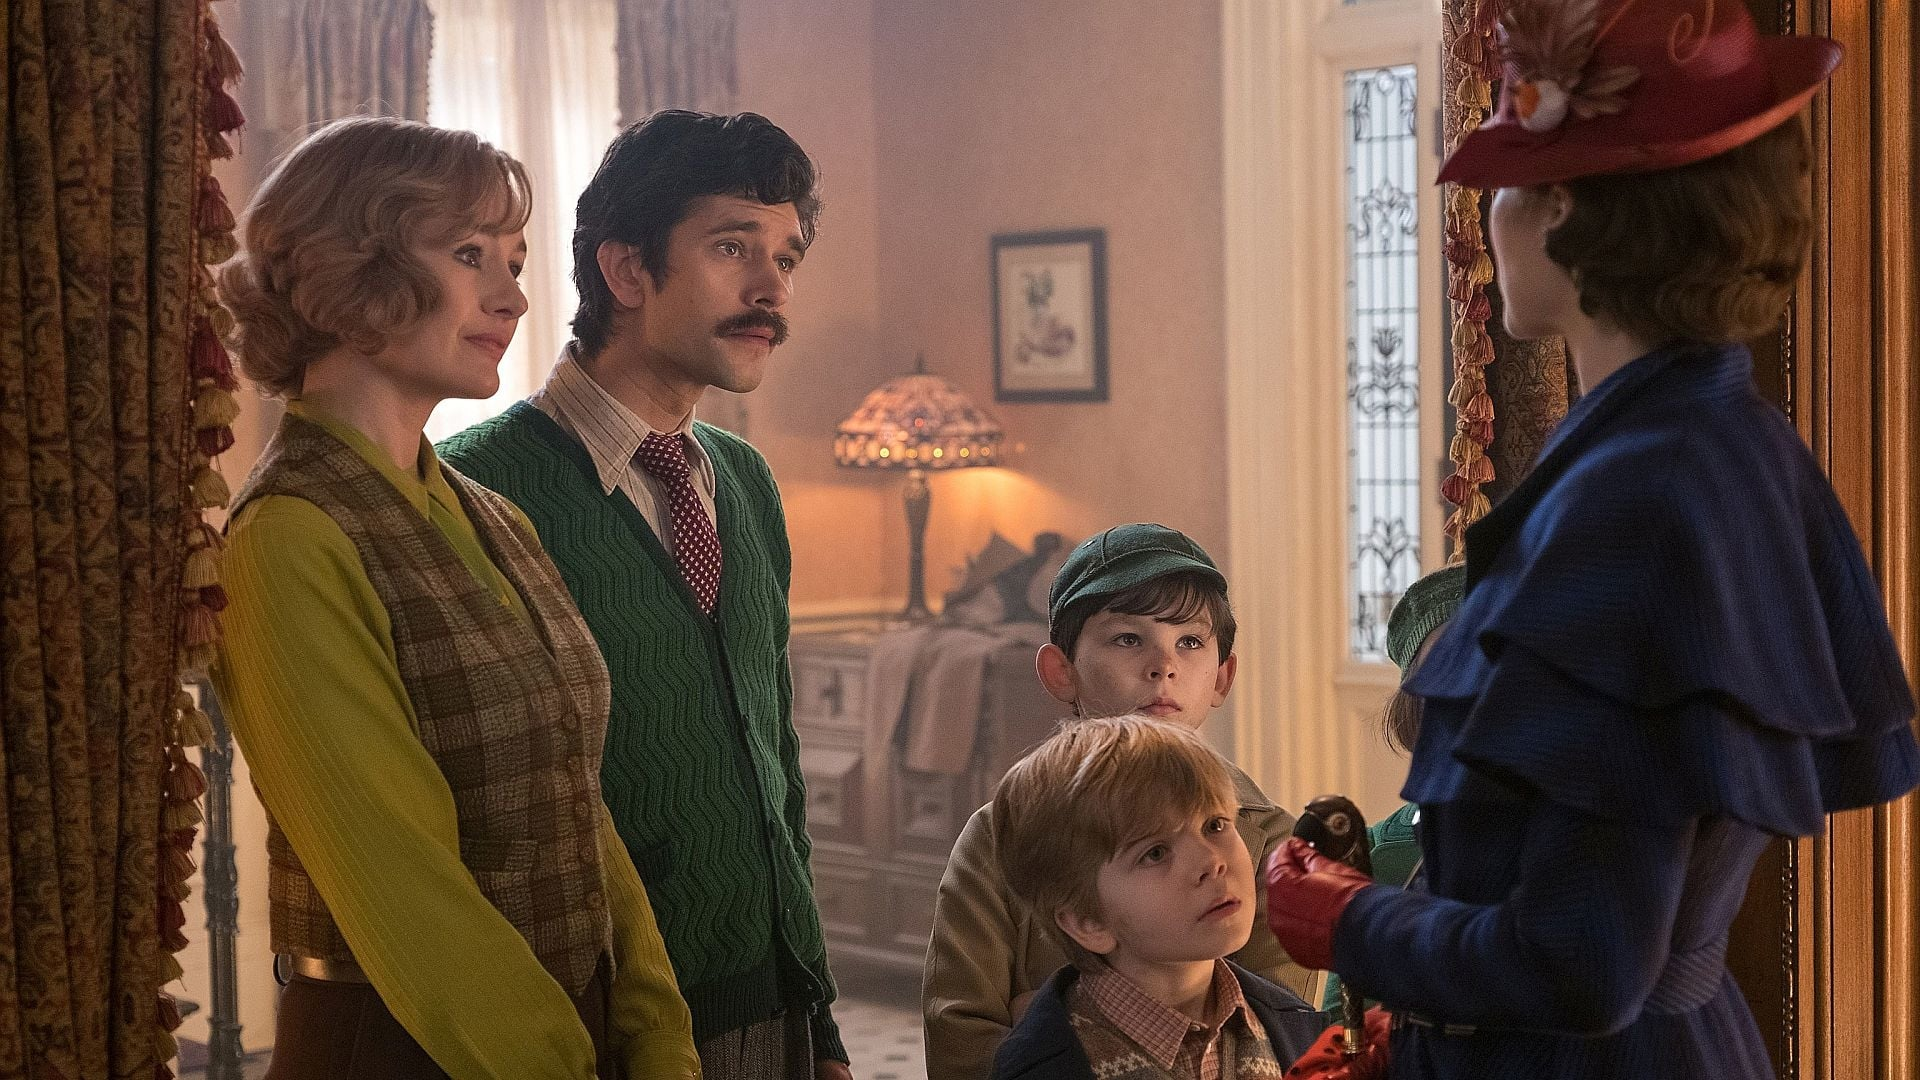 (l to r) The grown-up Banks children Jane (Emily Mortimer) and Michael (Ben Whishaw), his children Georgie (Joel Dawson) and John (Nathaniel Saleh), and Mary Poppins (Emily Blunt) in Mary Poppins Returns (2018)